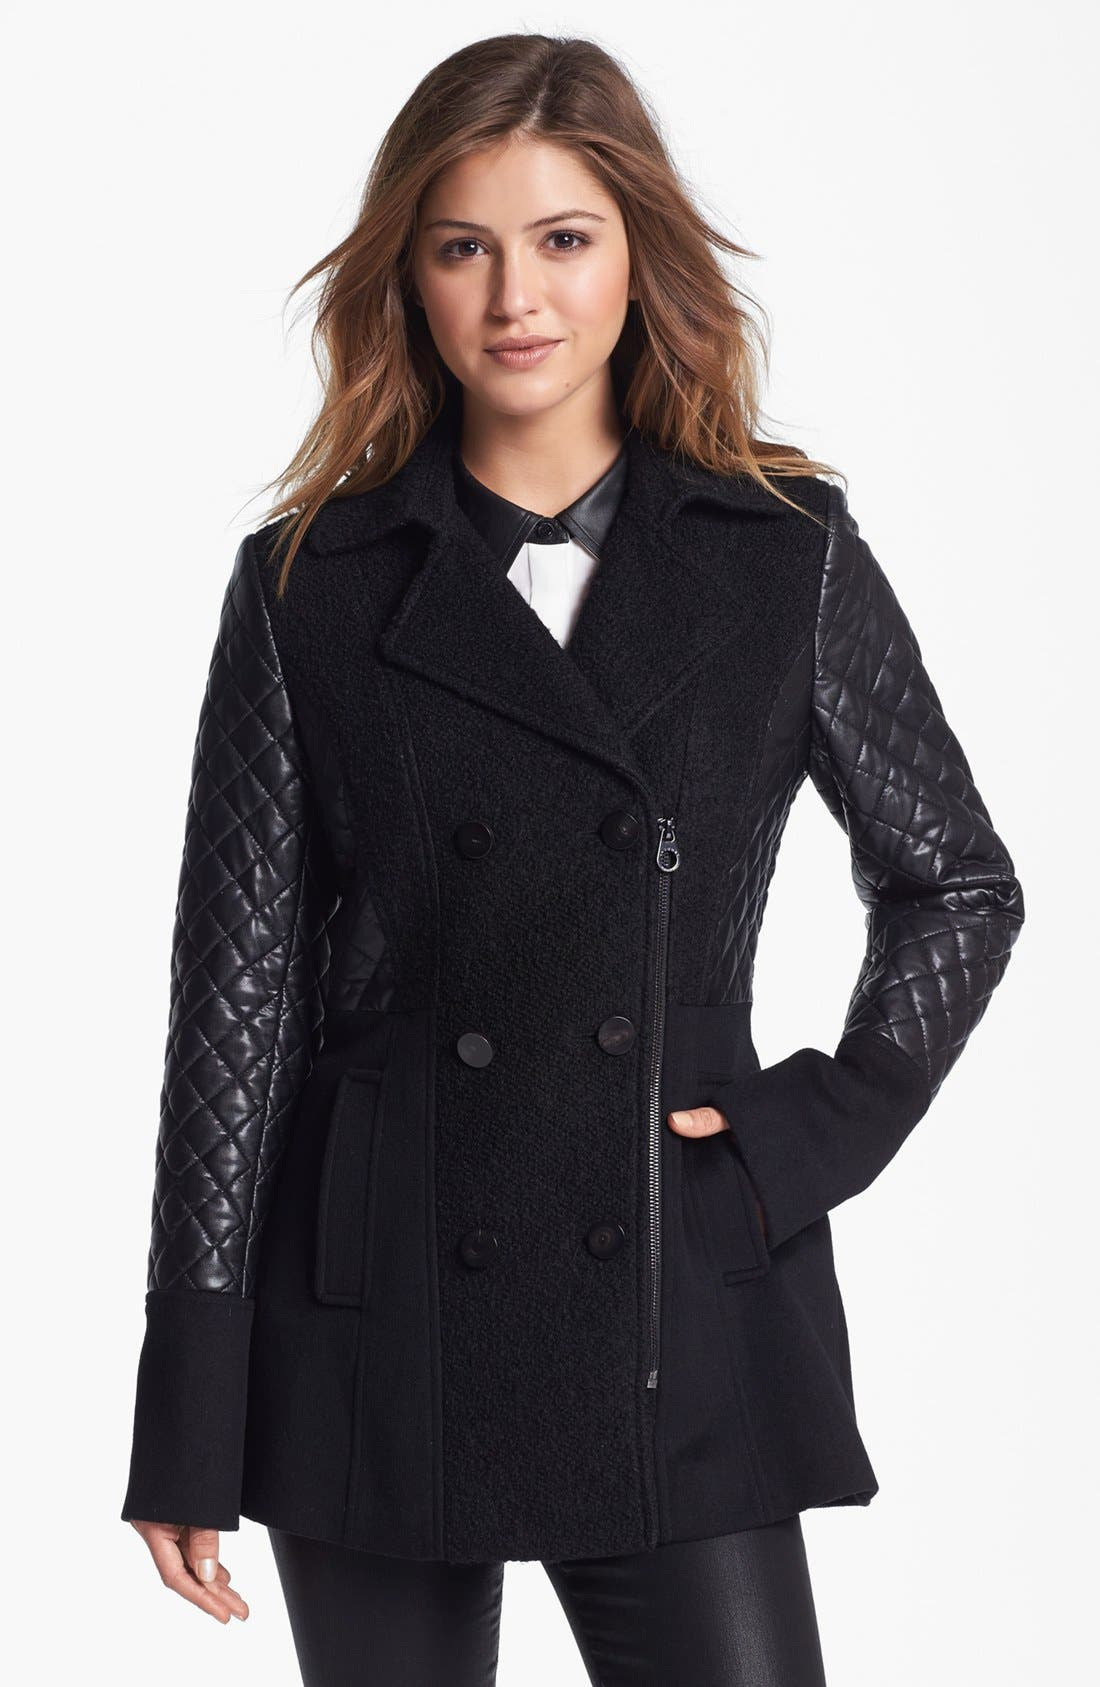 Alternate Image 1 Selected - Laundry by Shelli Segal Quilted Sleeve Mixed Media Peacoat